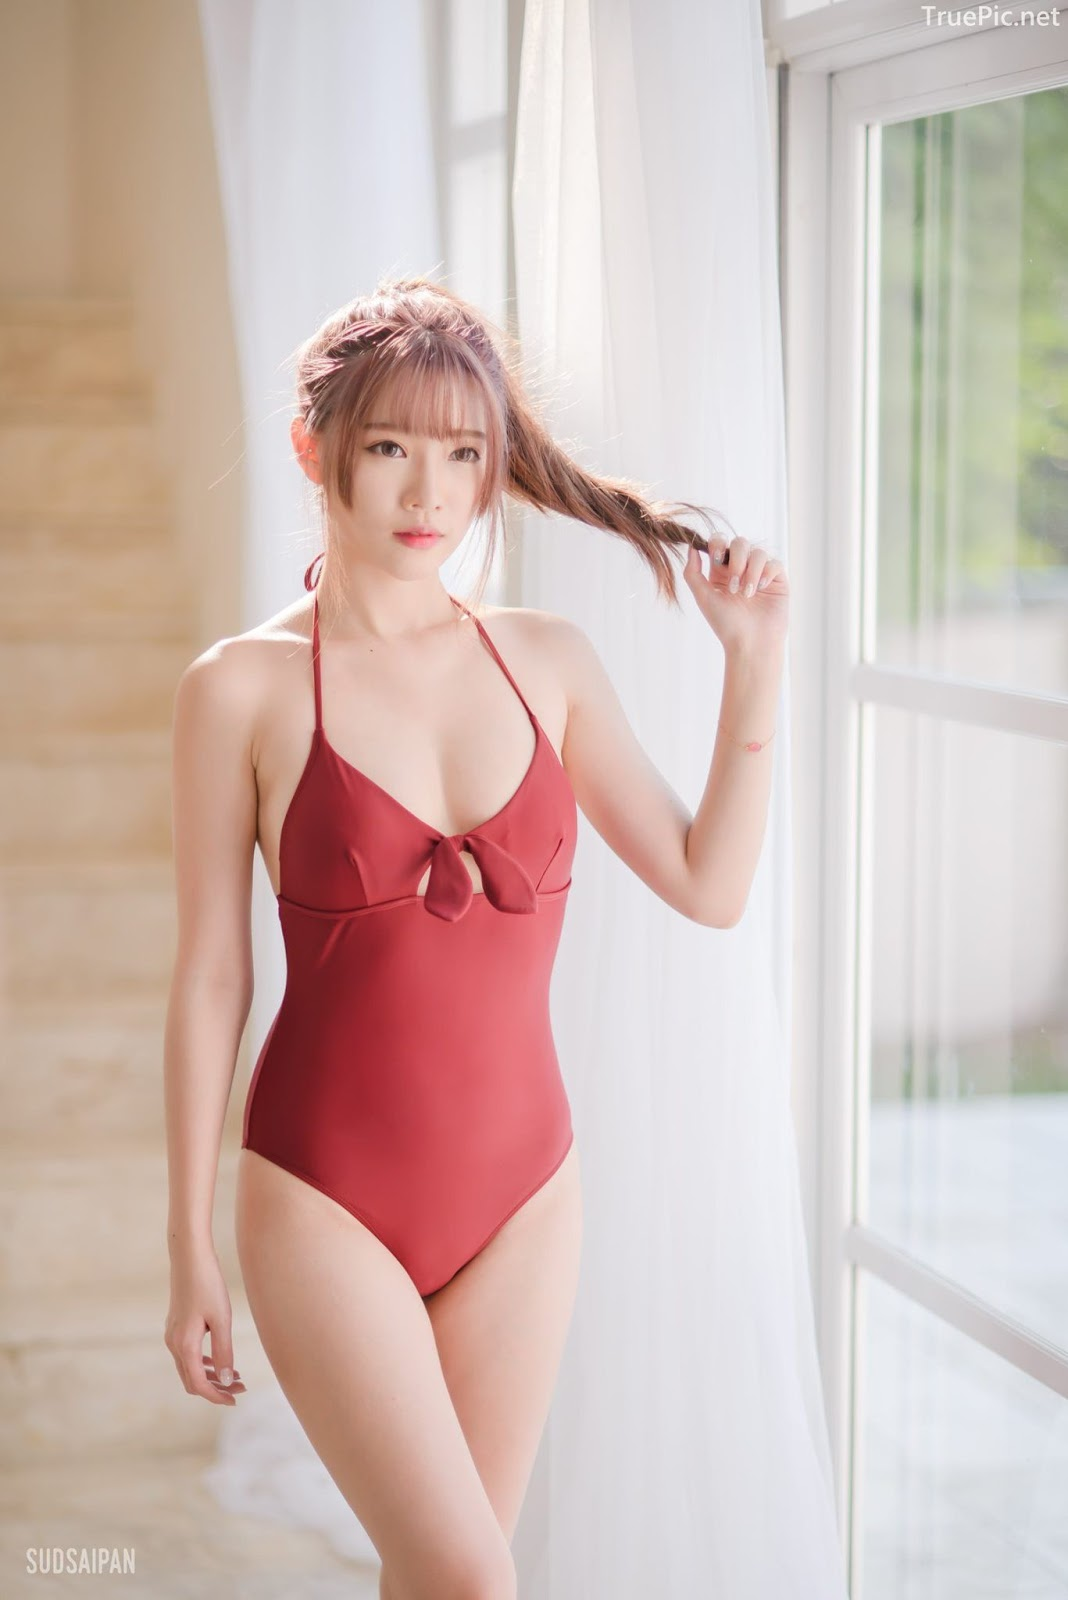 Chinese hot streaming girl - 簡欣汝 - Red Swimming Suit - TruePic.net - Picture 10